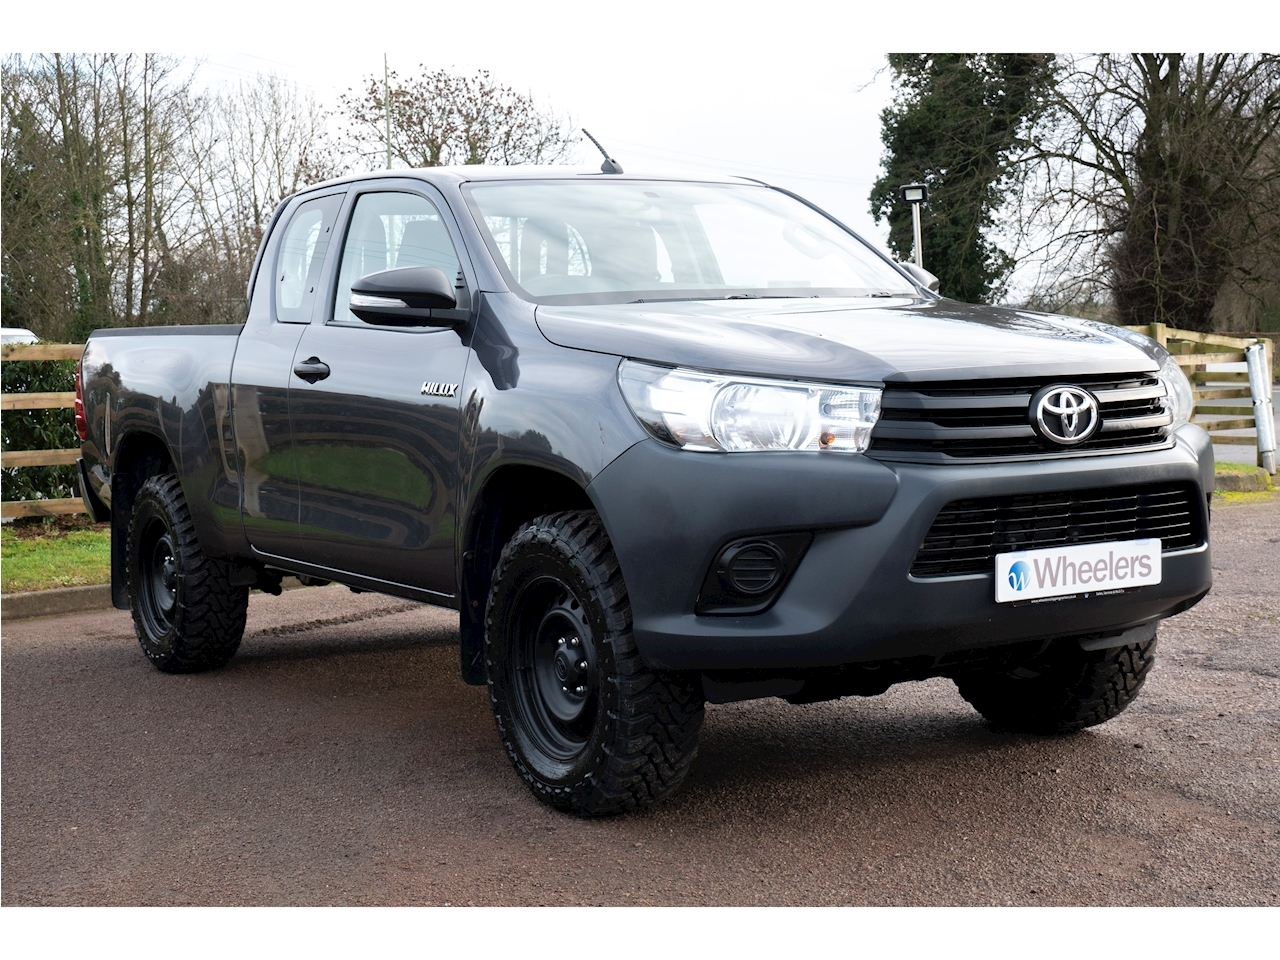 Toyota Hilux Active 4Wd D-4D Ecb Light 4X4 Utility 2.4 Manual Diesel